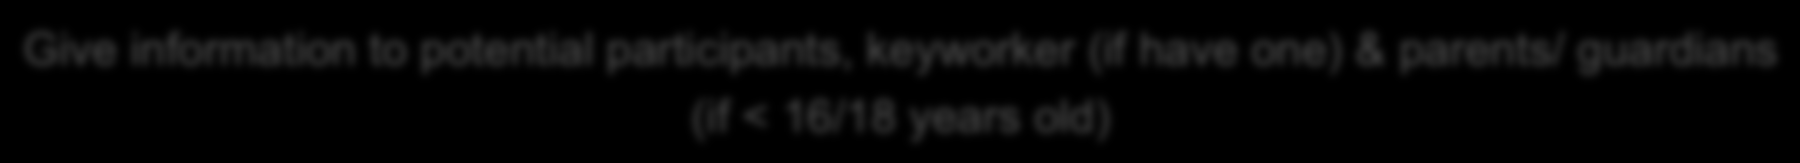 We acknowledge that some people may have thought that a referral had been made when in reality the referral may have been for some other reason; conversely participants may not have thought a